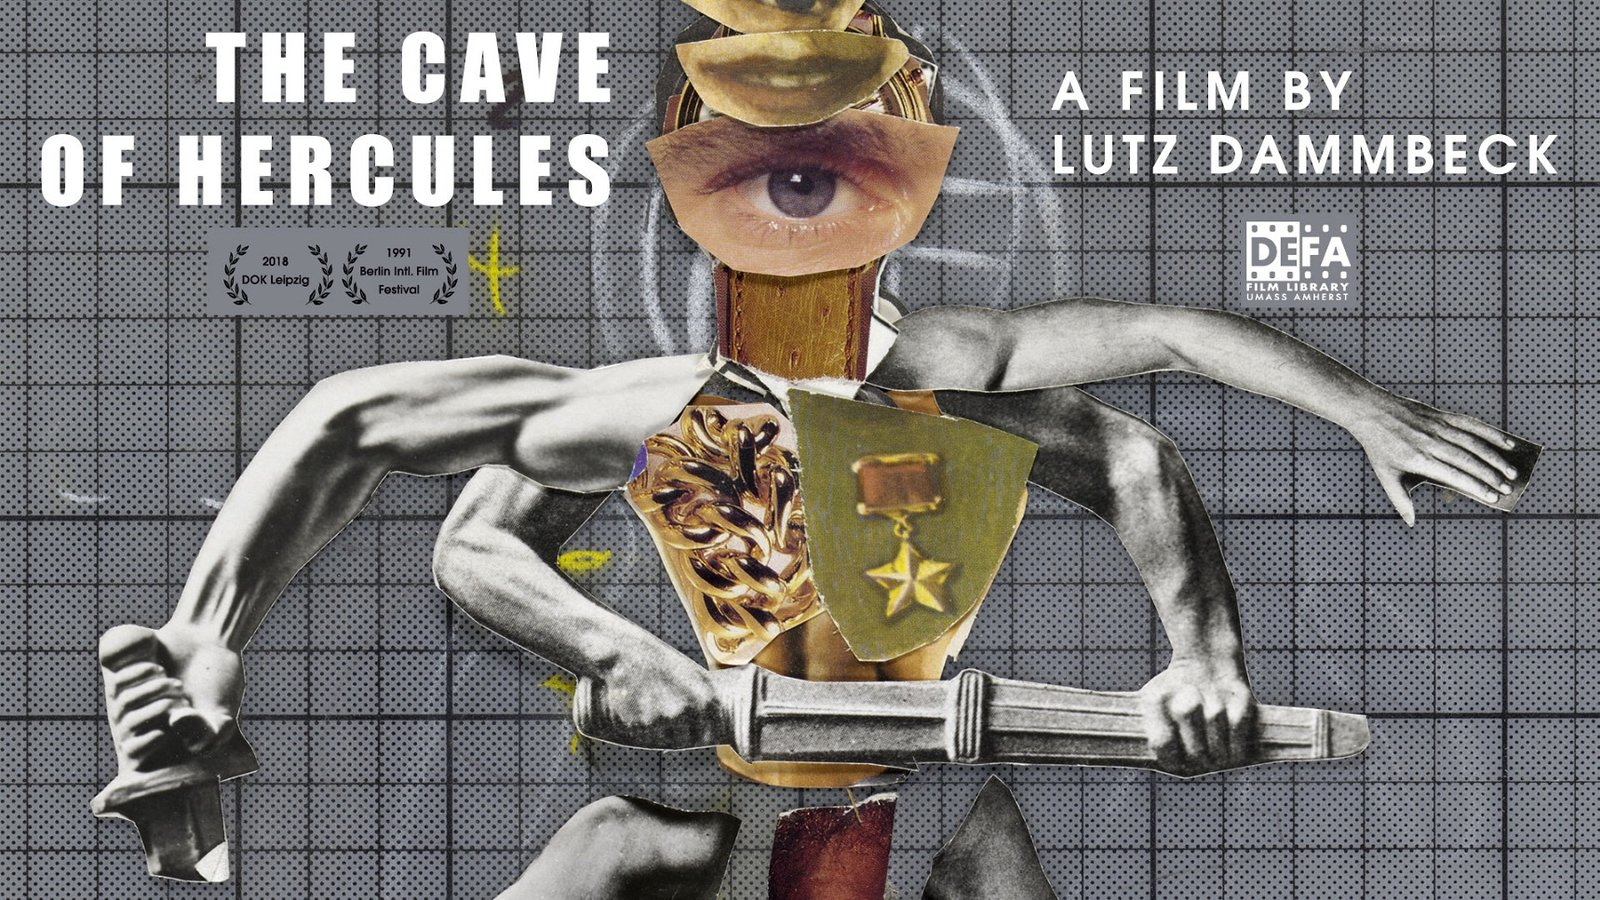 The Cave of Hercules